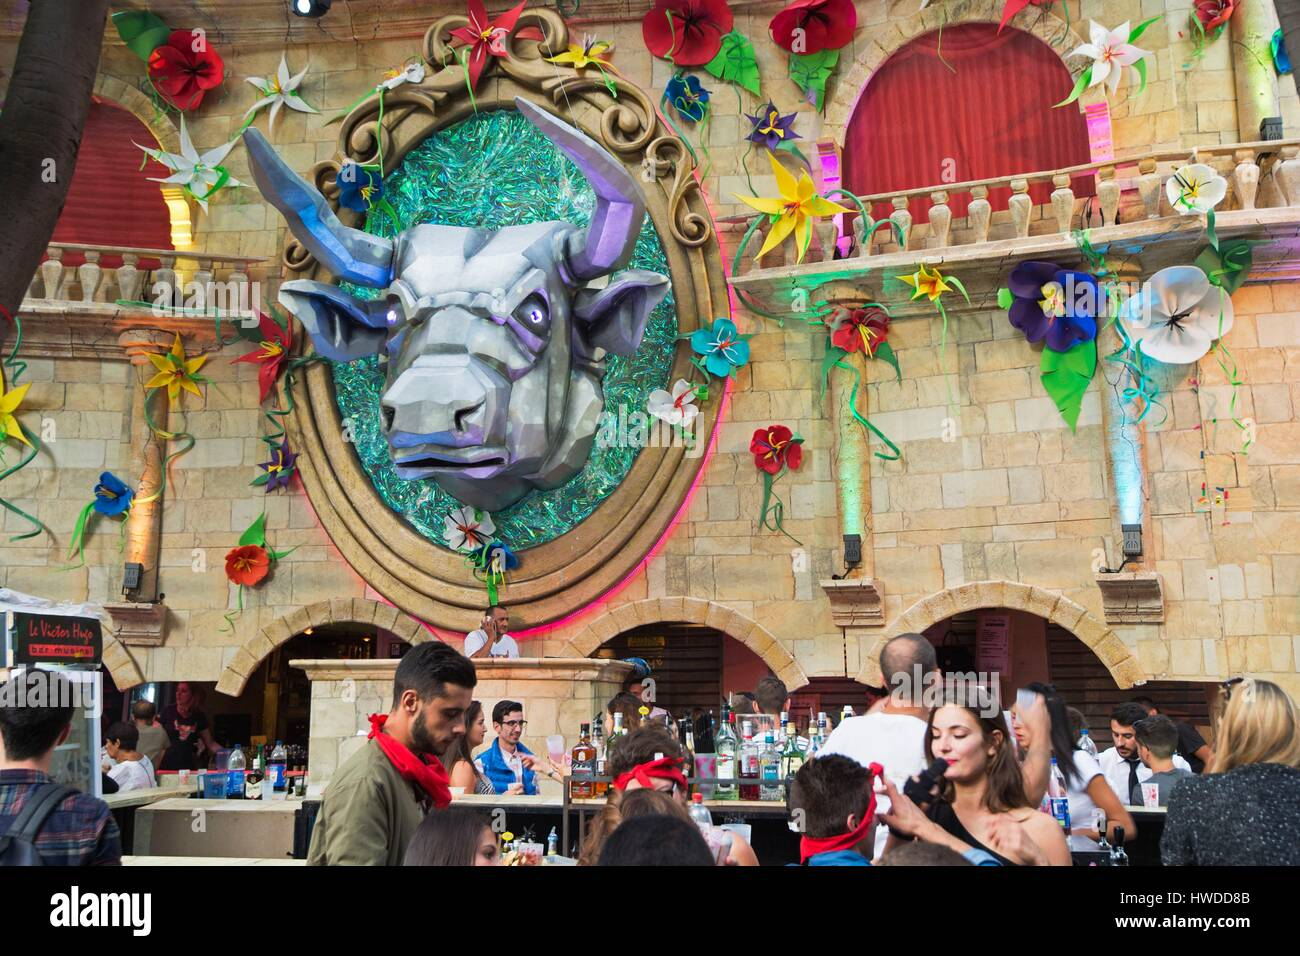 Decoration Nimes France Gard Nimes The Feria Des Vendanges Takes Place Every